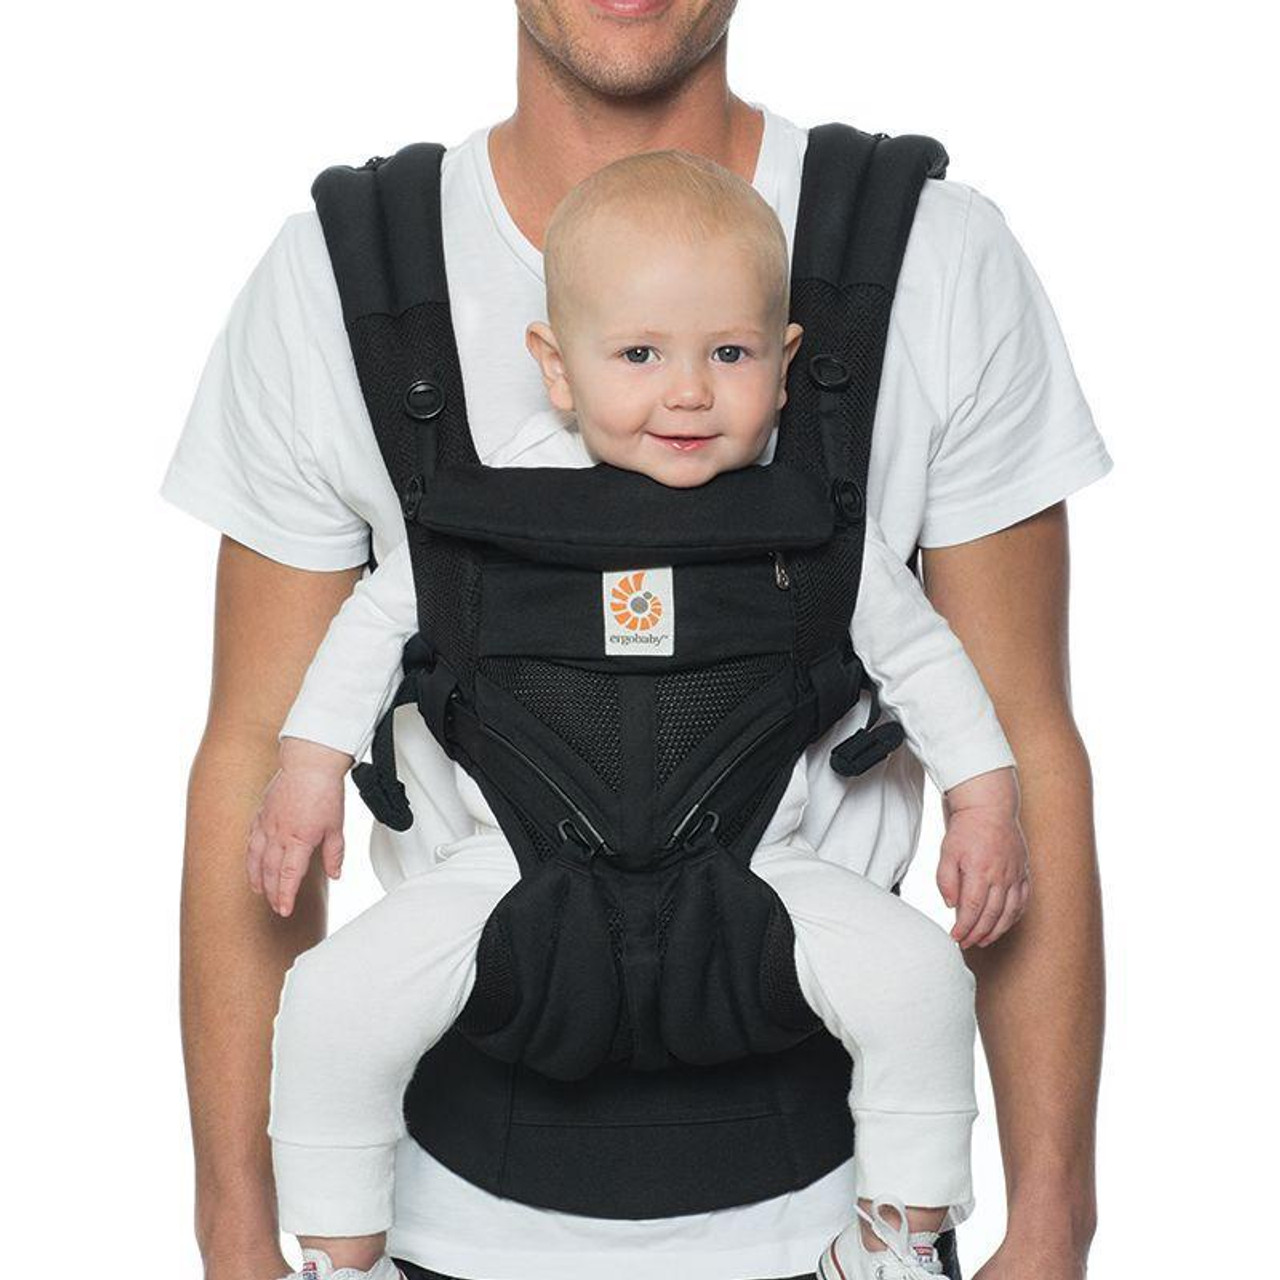 Ergobaby OMNI 360 Baby Carrier All in One Cool Air Mesh ONYX BLACK at Baby Barn Discounts Omni 360 in a Cool Air Mesh option perfect for the Australian climate.